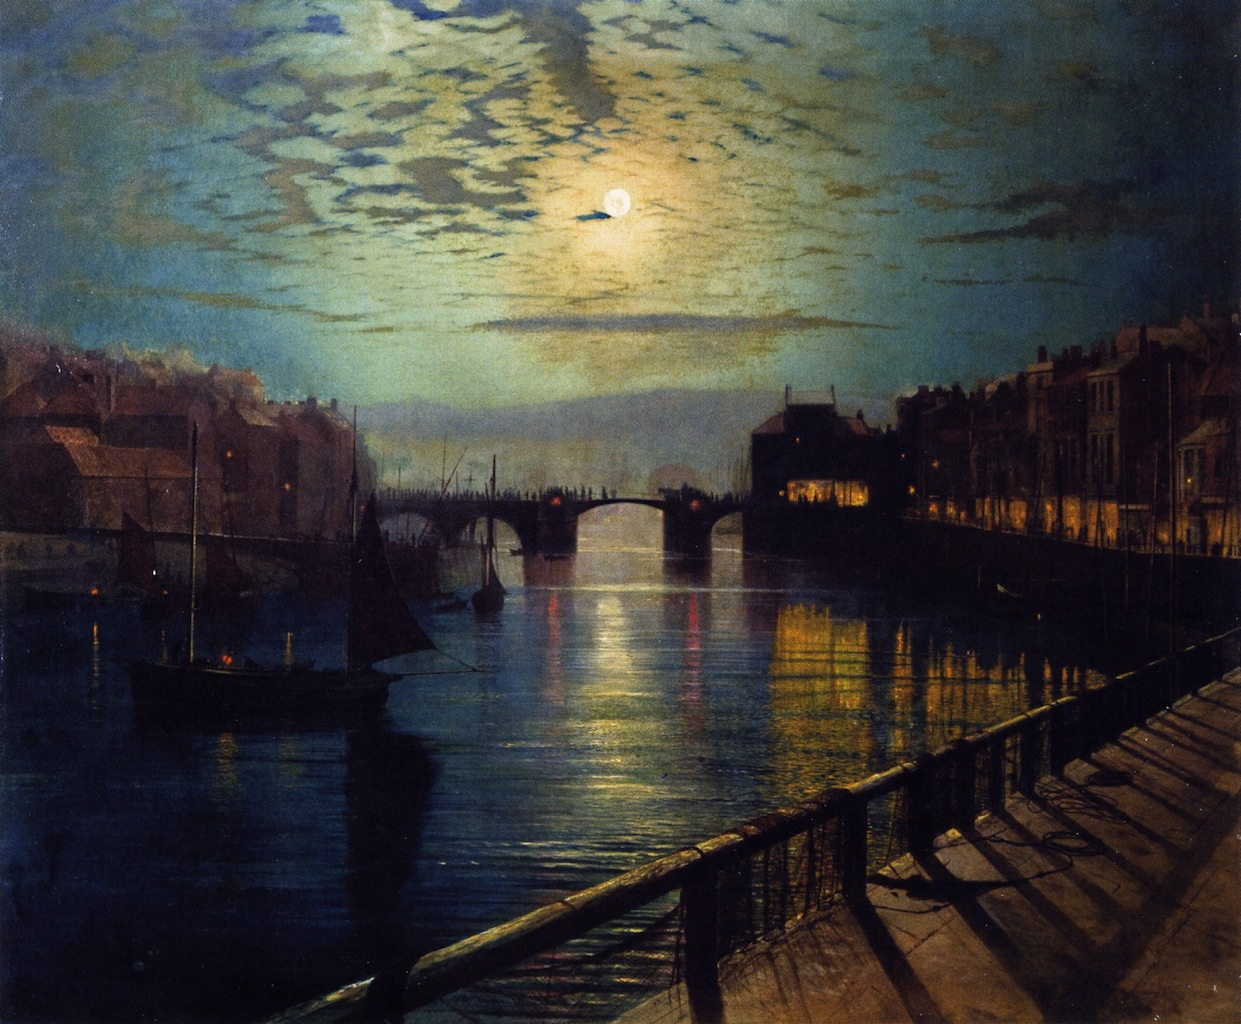 Whitby Harbor by Moonlight - John Atkinson Grimshaw